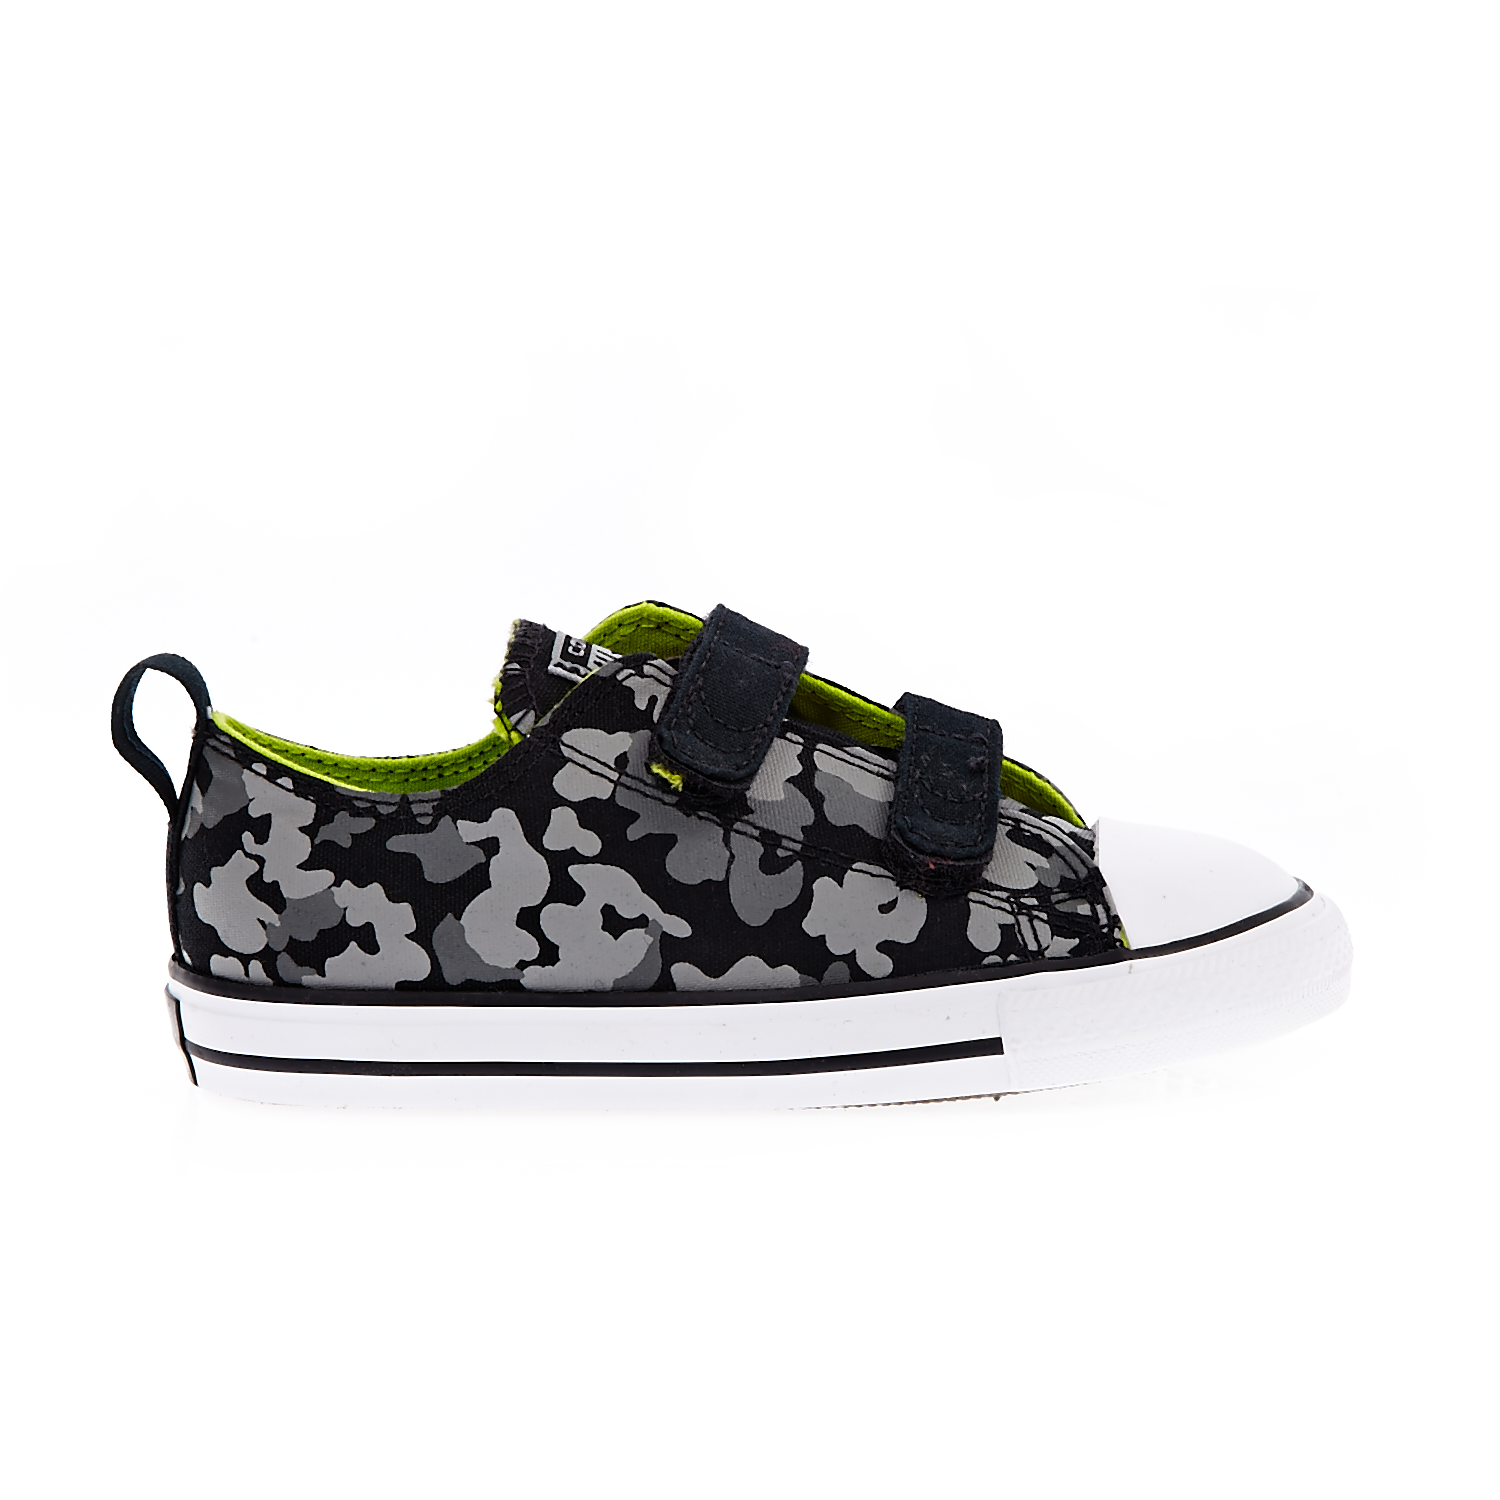 CONVERSE - Βρεφικά παπούτσια Chuck Taylor All Star 2V Ox μαύρα-γκρι παιδικά baby παπούτσια sneakers